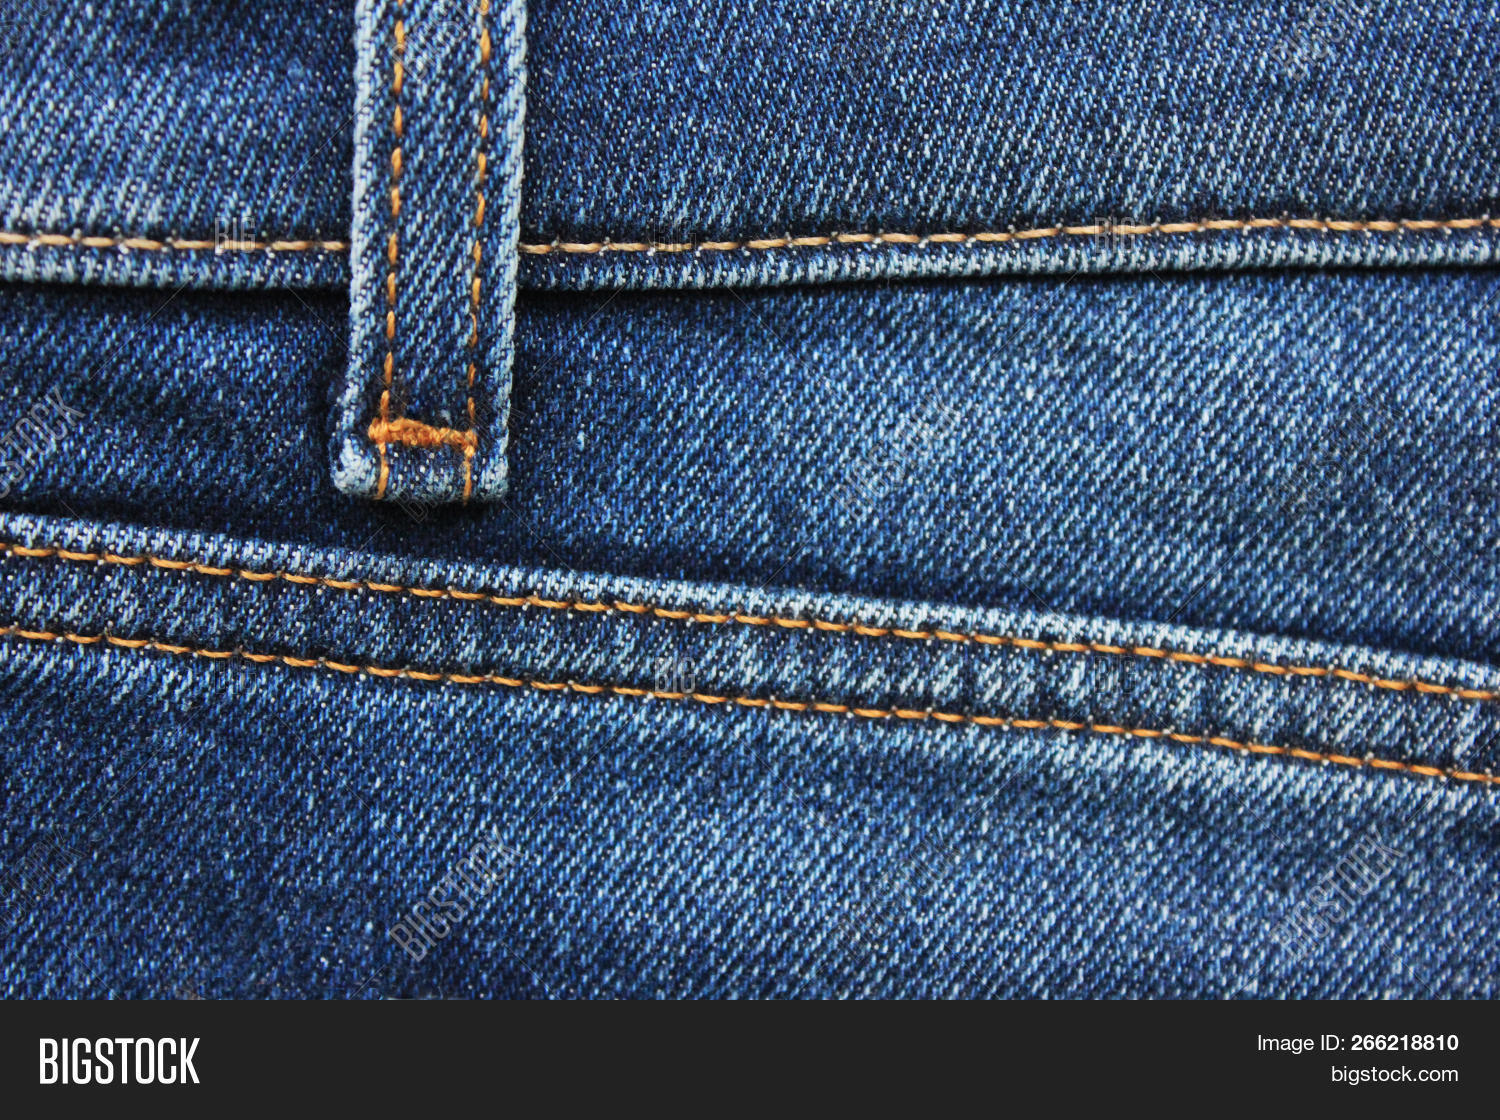 5a074309065 Blue Denim Jeans Design Detail with Seams Close Up View. Classic Fashion  Jeans Natural Pattern